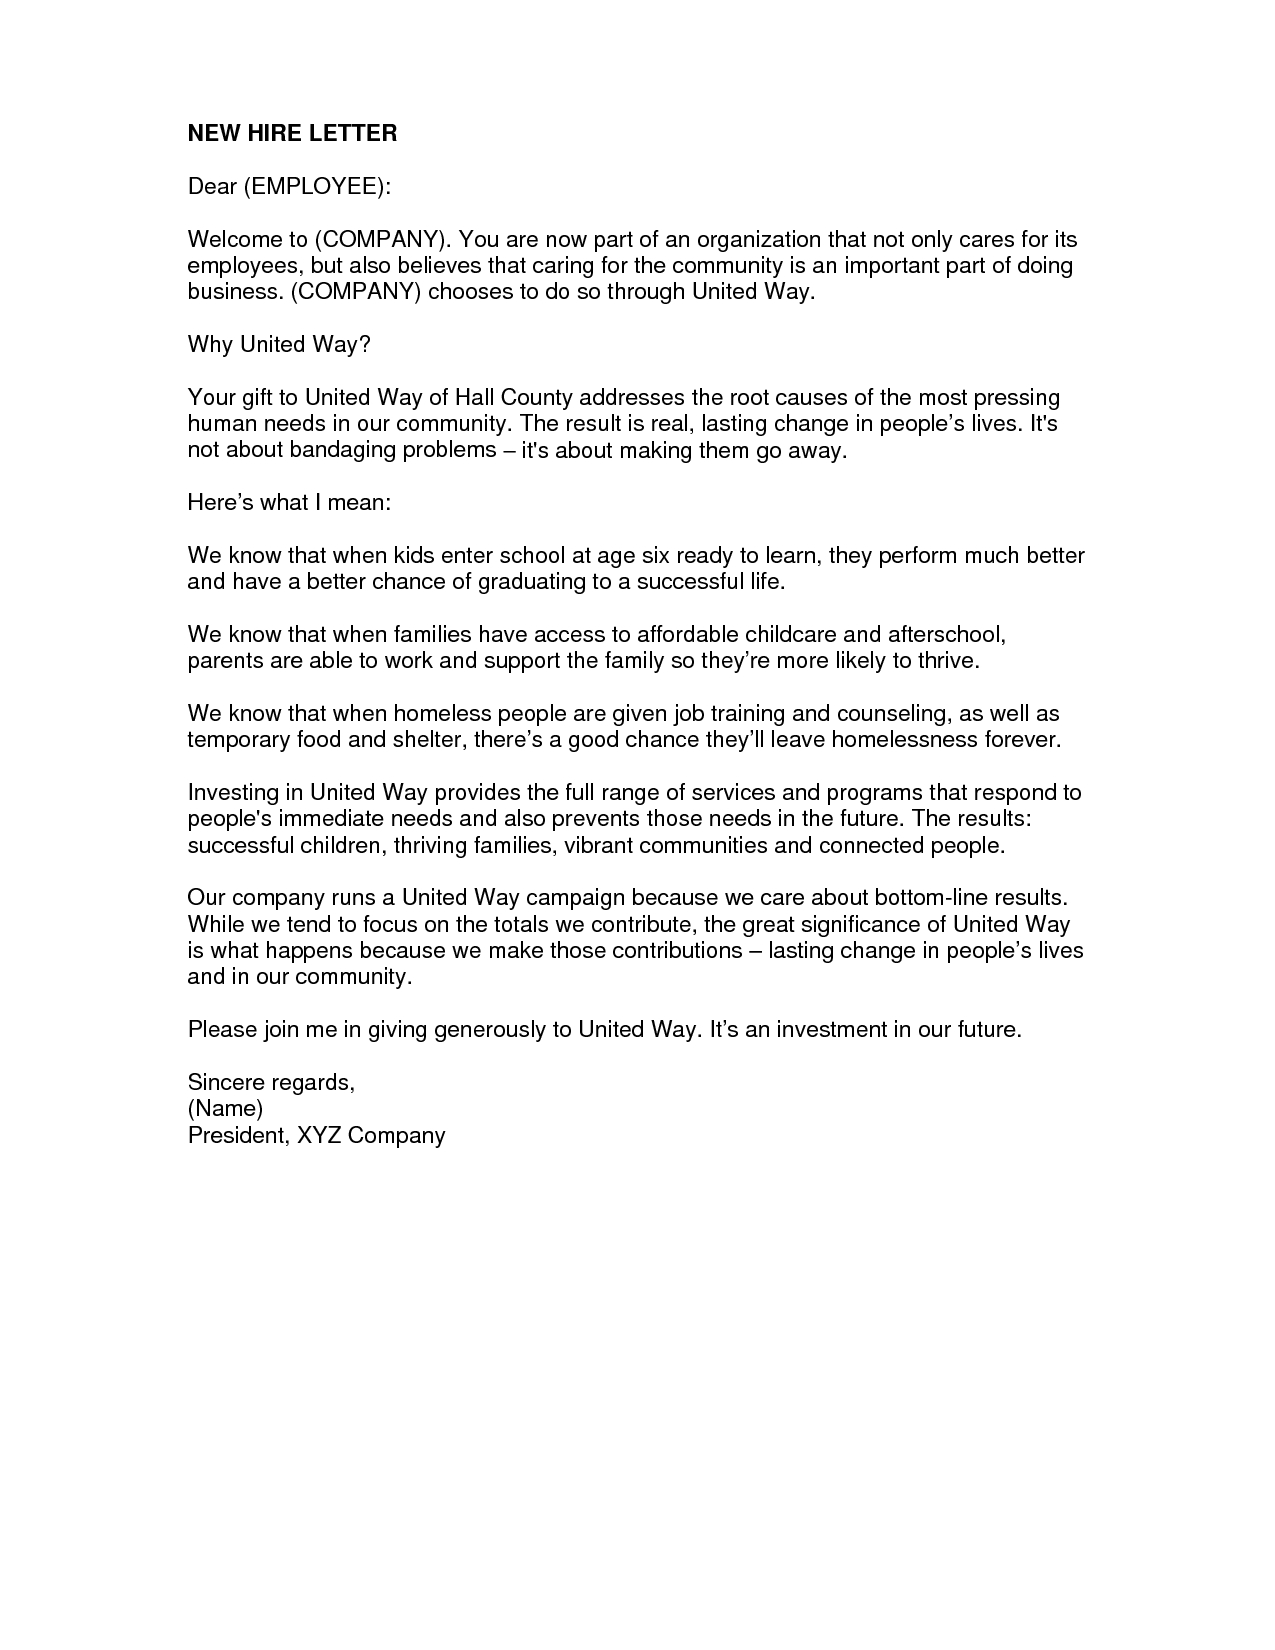 New Hire Welcome Letter Template - How to Write A Wel E Letter to A New Employee Letter